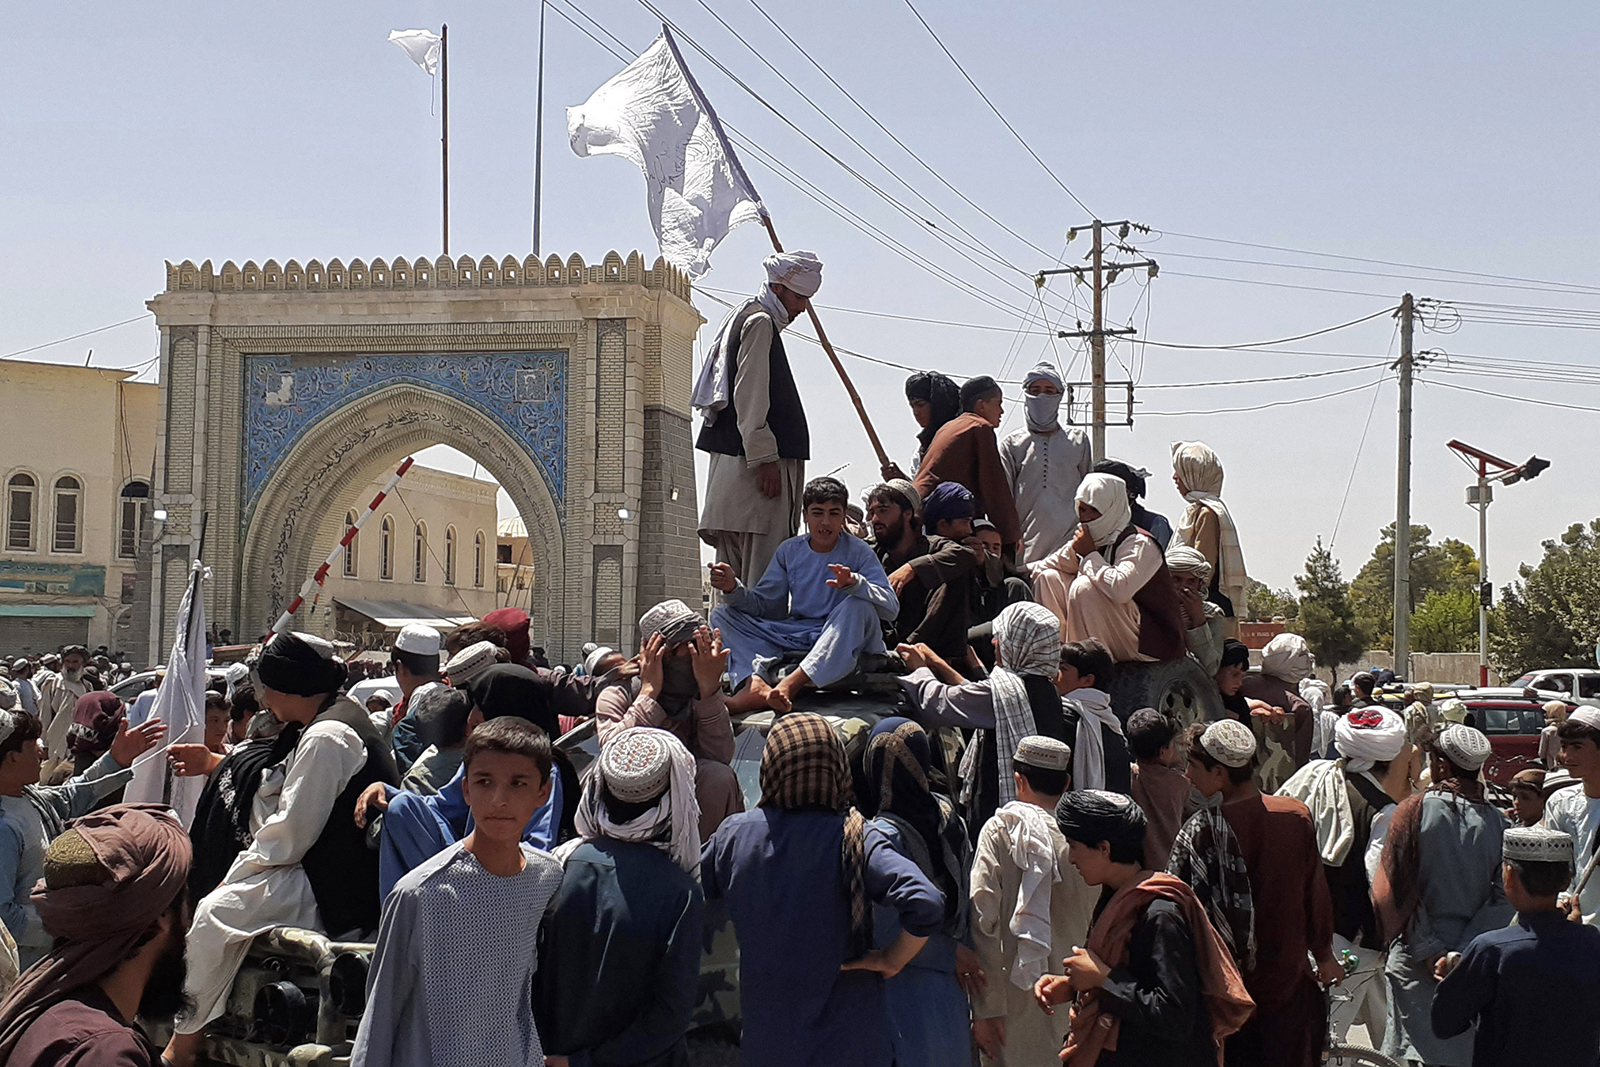 Taliban fighters stand on a vehicle along the roadside in Kandahar, Afghanistan on August 13.